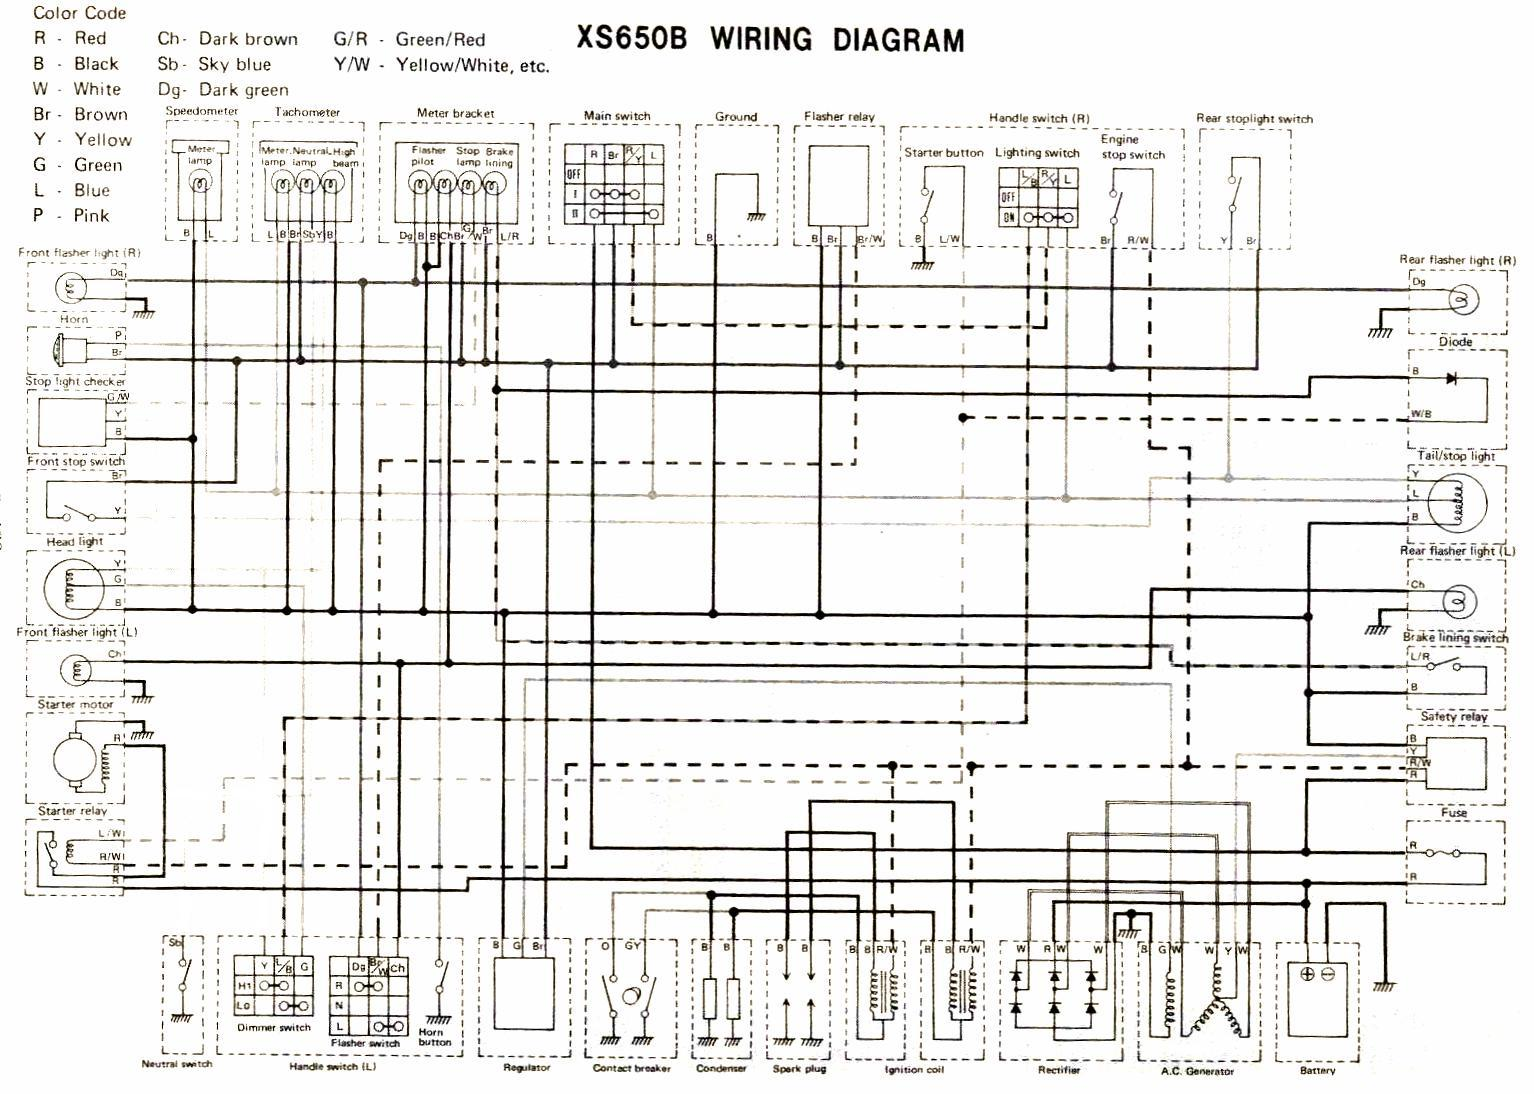 82 Xv920 Wiring Diagram - Wiring Diagram Work on